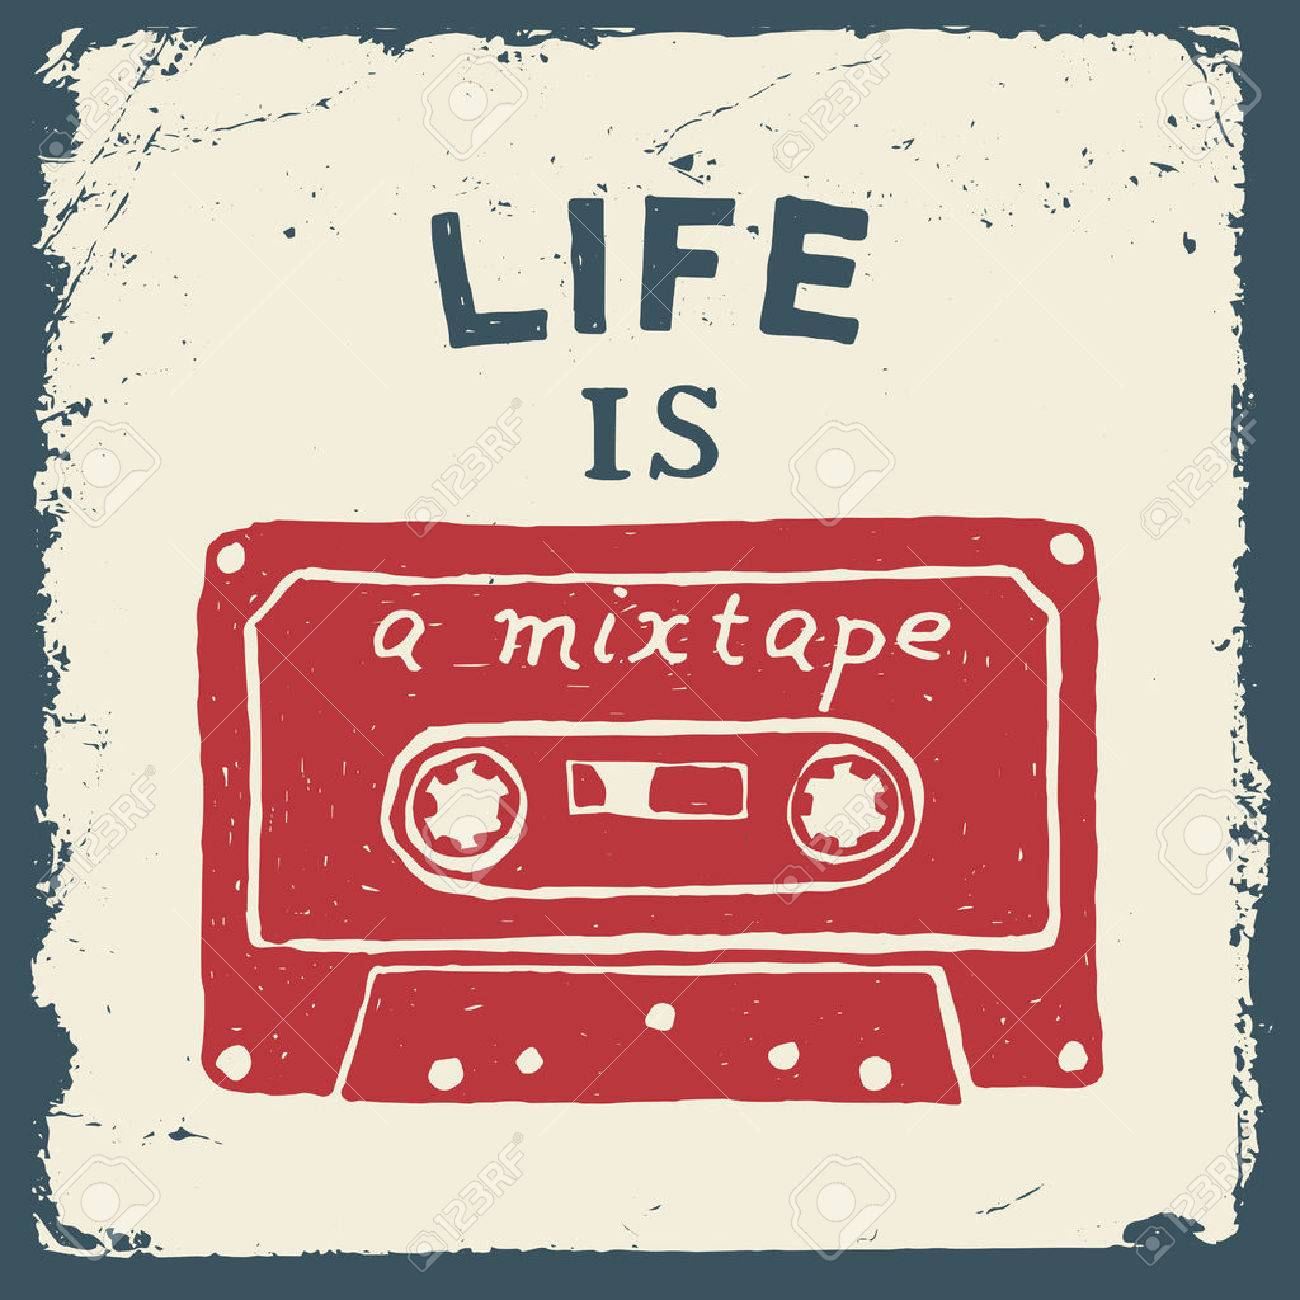 music hand drawn typography poster with tape. life is a mixtape. artwork for wear. vector inspirational illustration on grunge background - 42584419